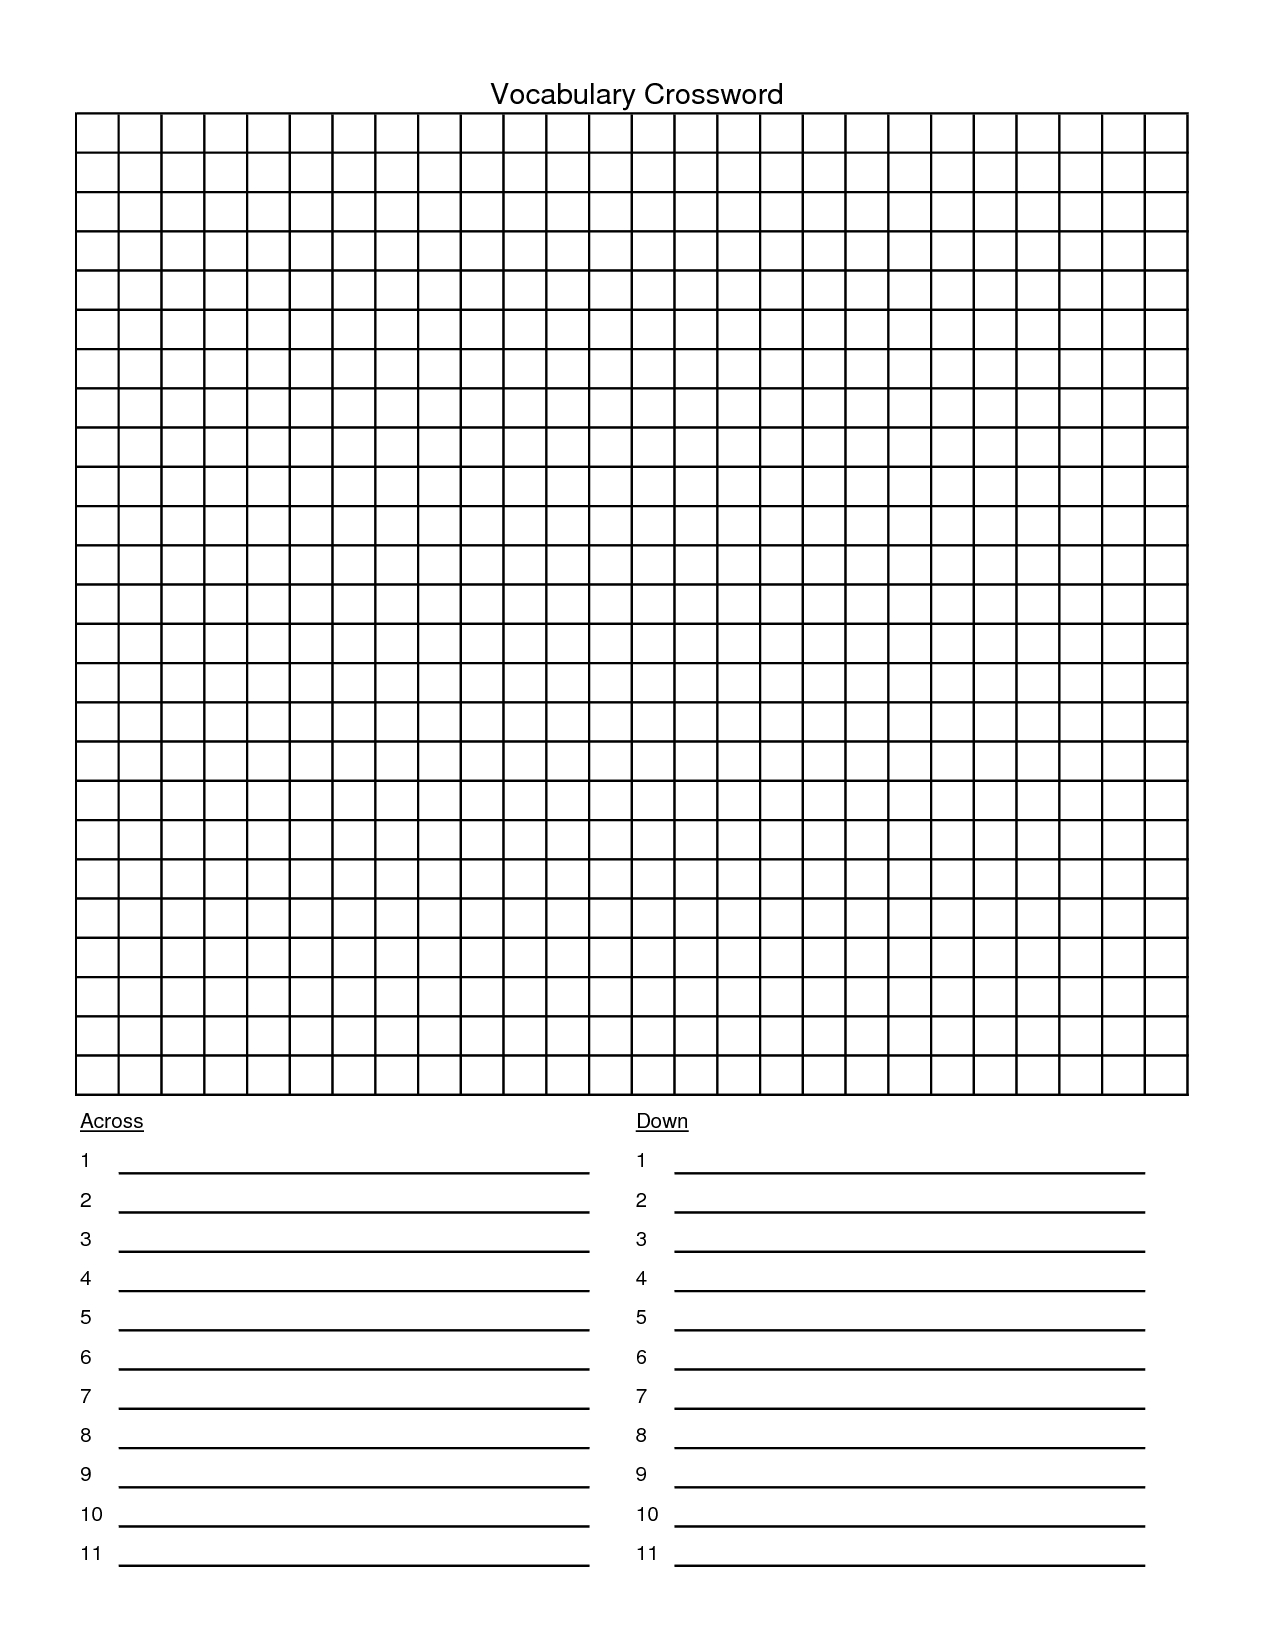 Template For Crossword Puzzle. Crossword Template Daily Dose Of - Blank Crossword Puzzle Printable